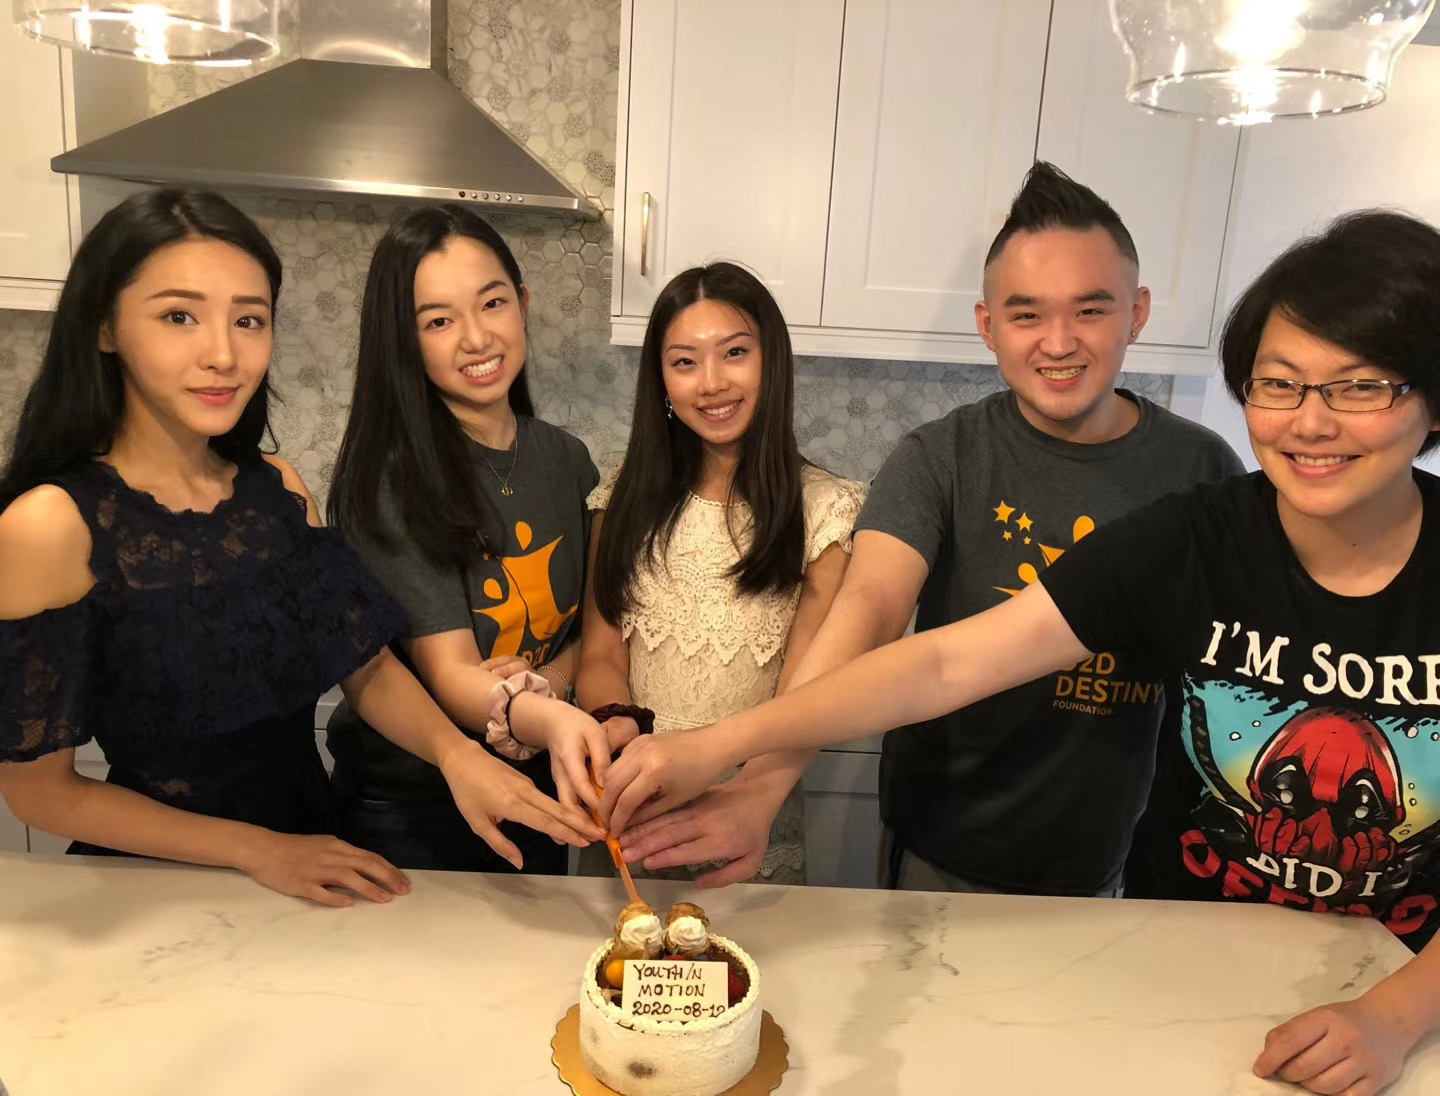 Young Ambassador members cut a cake to celebrate youth in motion